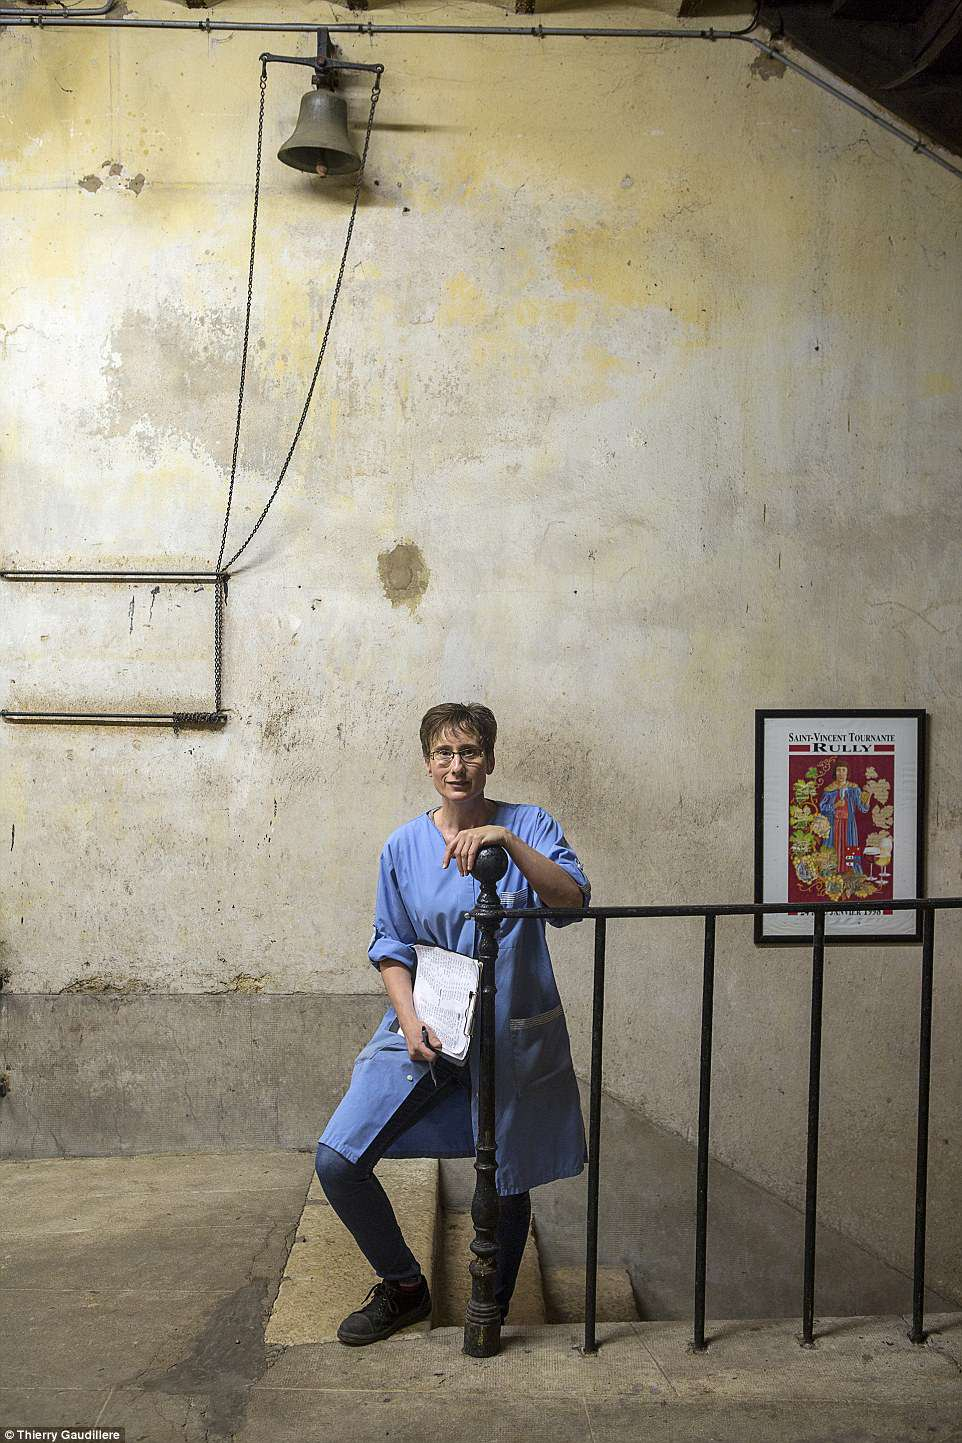 Thierry Gaudillere won in theErrazuriz Wine Photographer of the Year - People category for his image,Worker at Maison Champy, Beaune, Burgundy. Champyis the oldest négociant of wines, founded in Beaune in 1726. It still produces wines in the very centre of the town